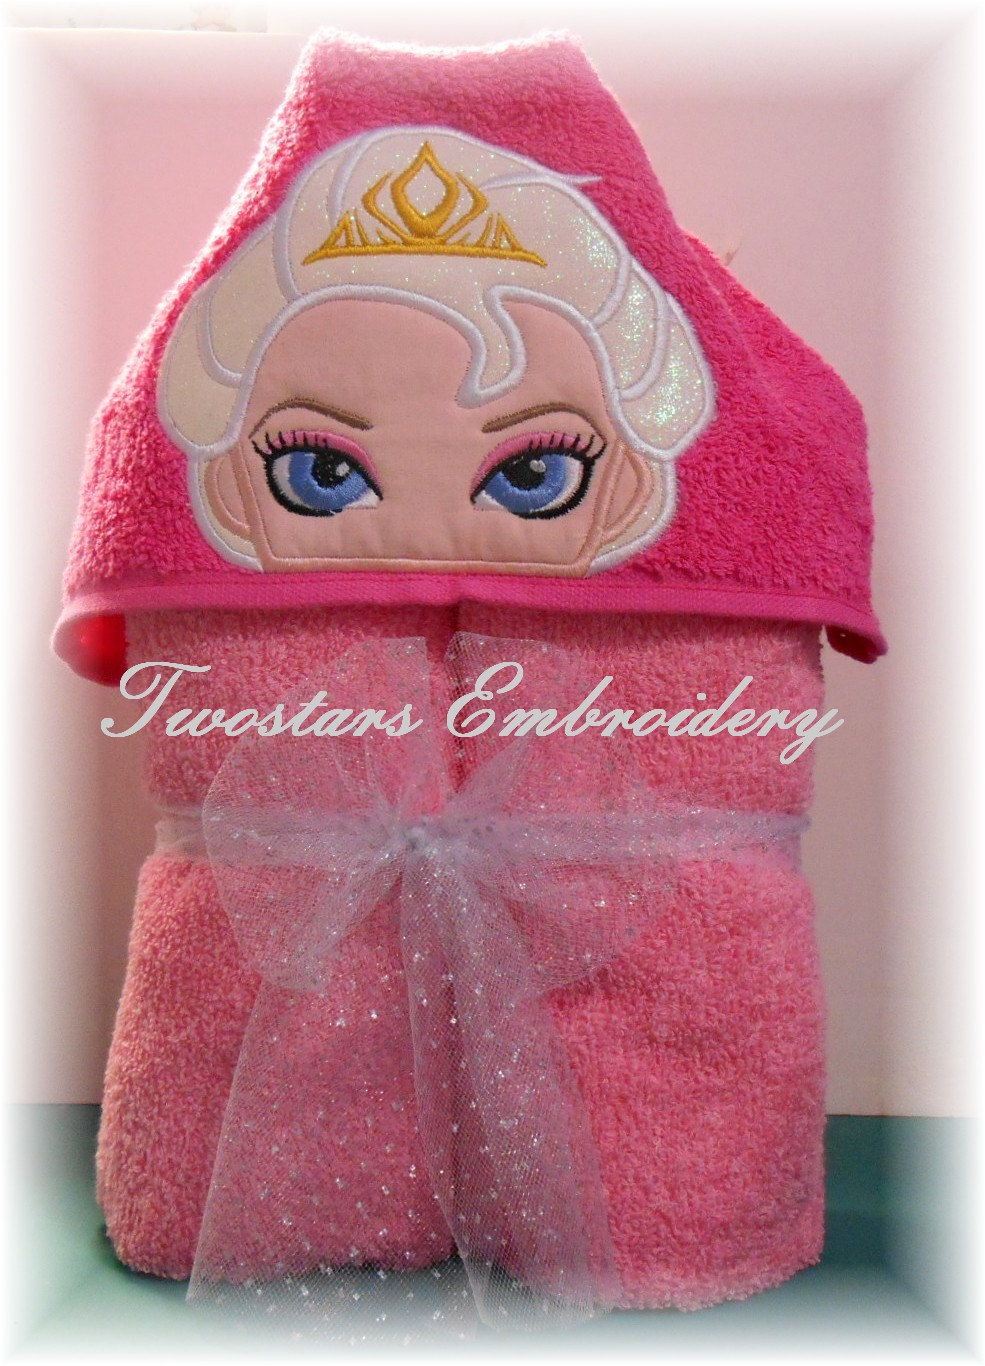 Kids Bath Towels Hooded Kids Bath Towels Your Pick Your Design